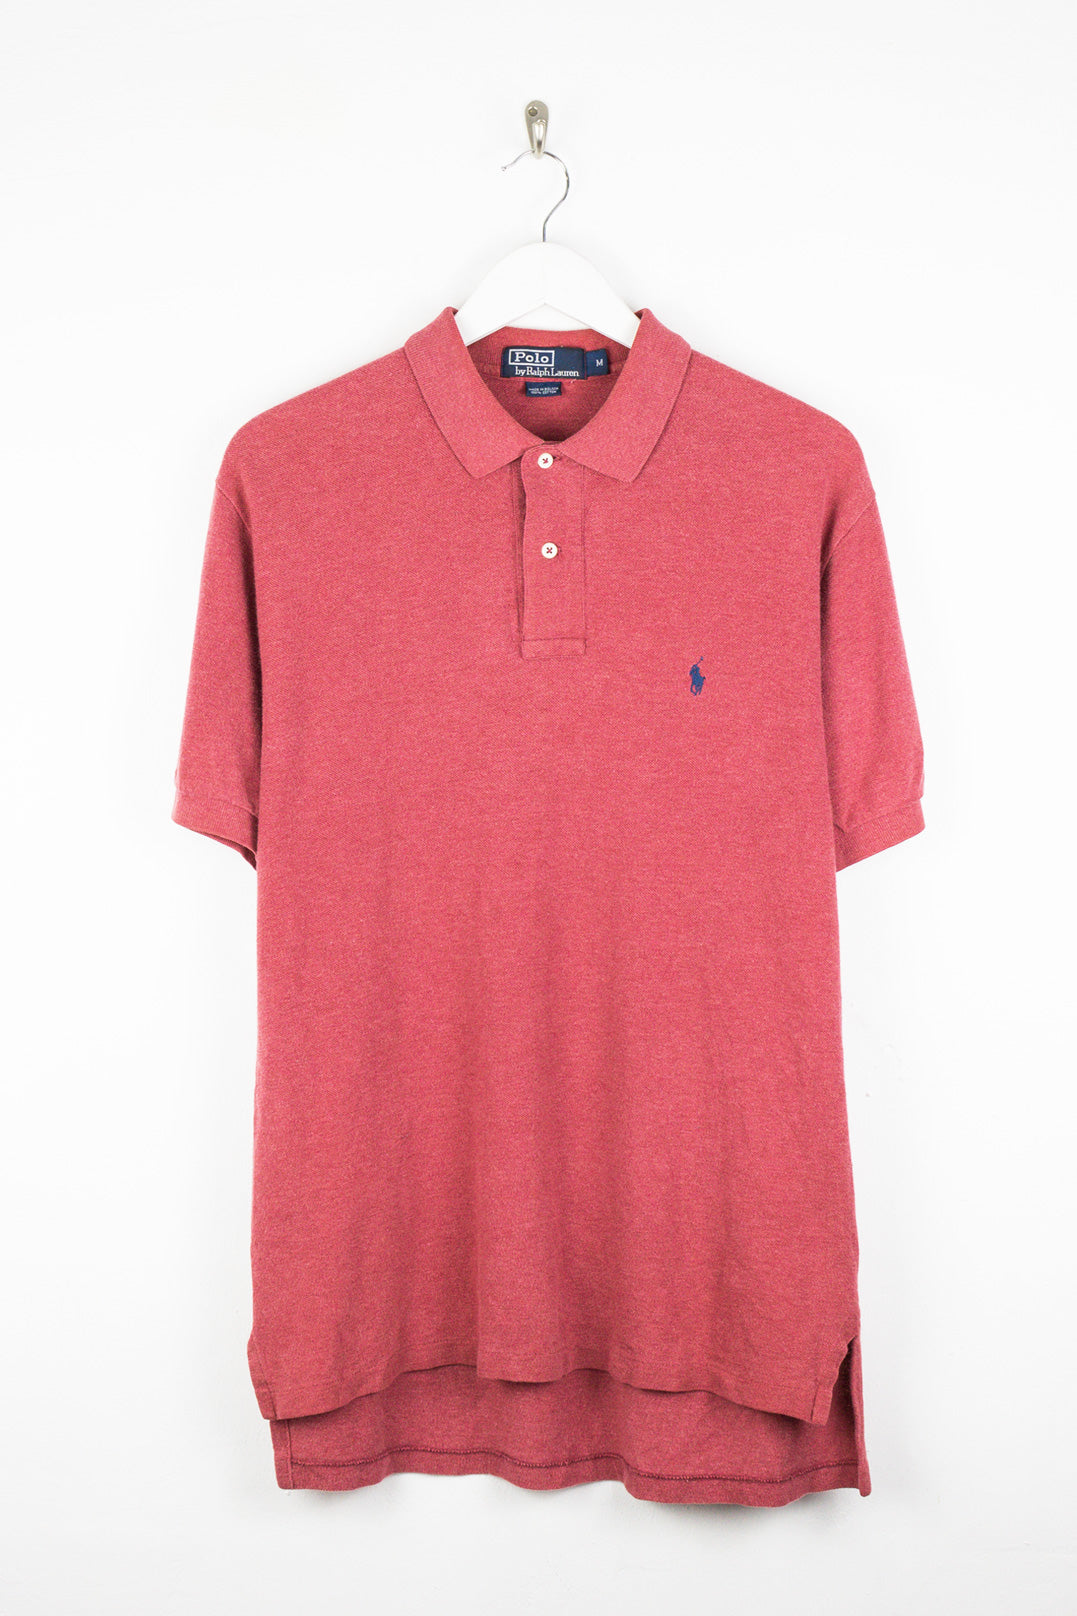 Polo RL fire